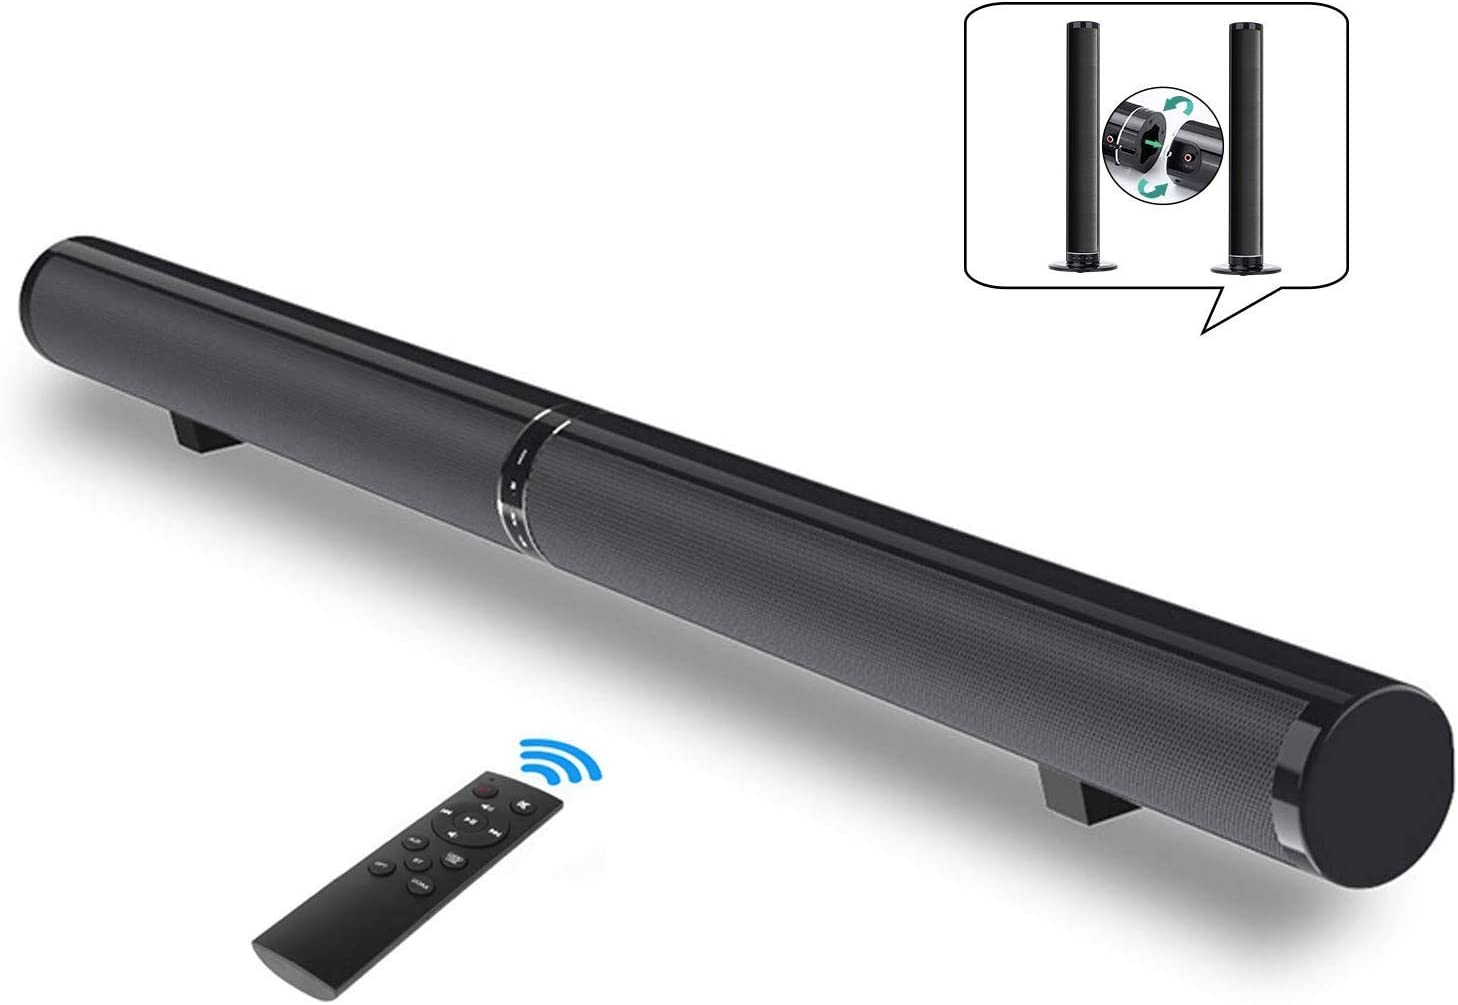 Sound Bar for TV, Fityou 50W 39.4inch Bluetooth 4.2 Speakers, Surround Soundbar 2.0 Channel Wired and Wireless Home Theater, Support HDMI Arc, Optical, RCA, 3.5mm Aux, USB and Subwoofer Input